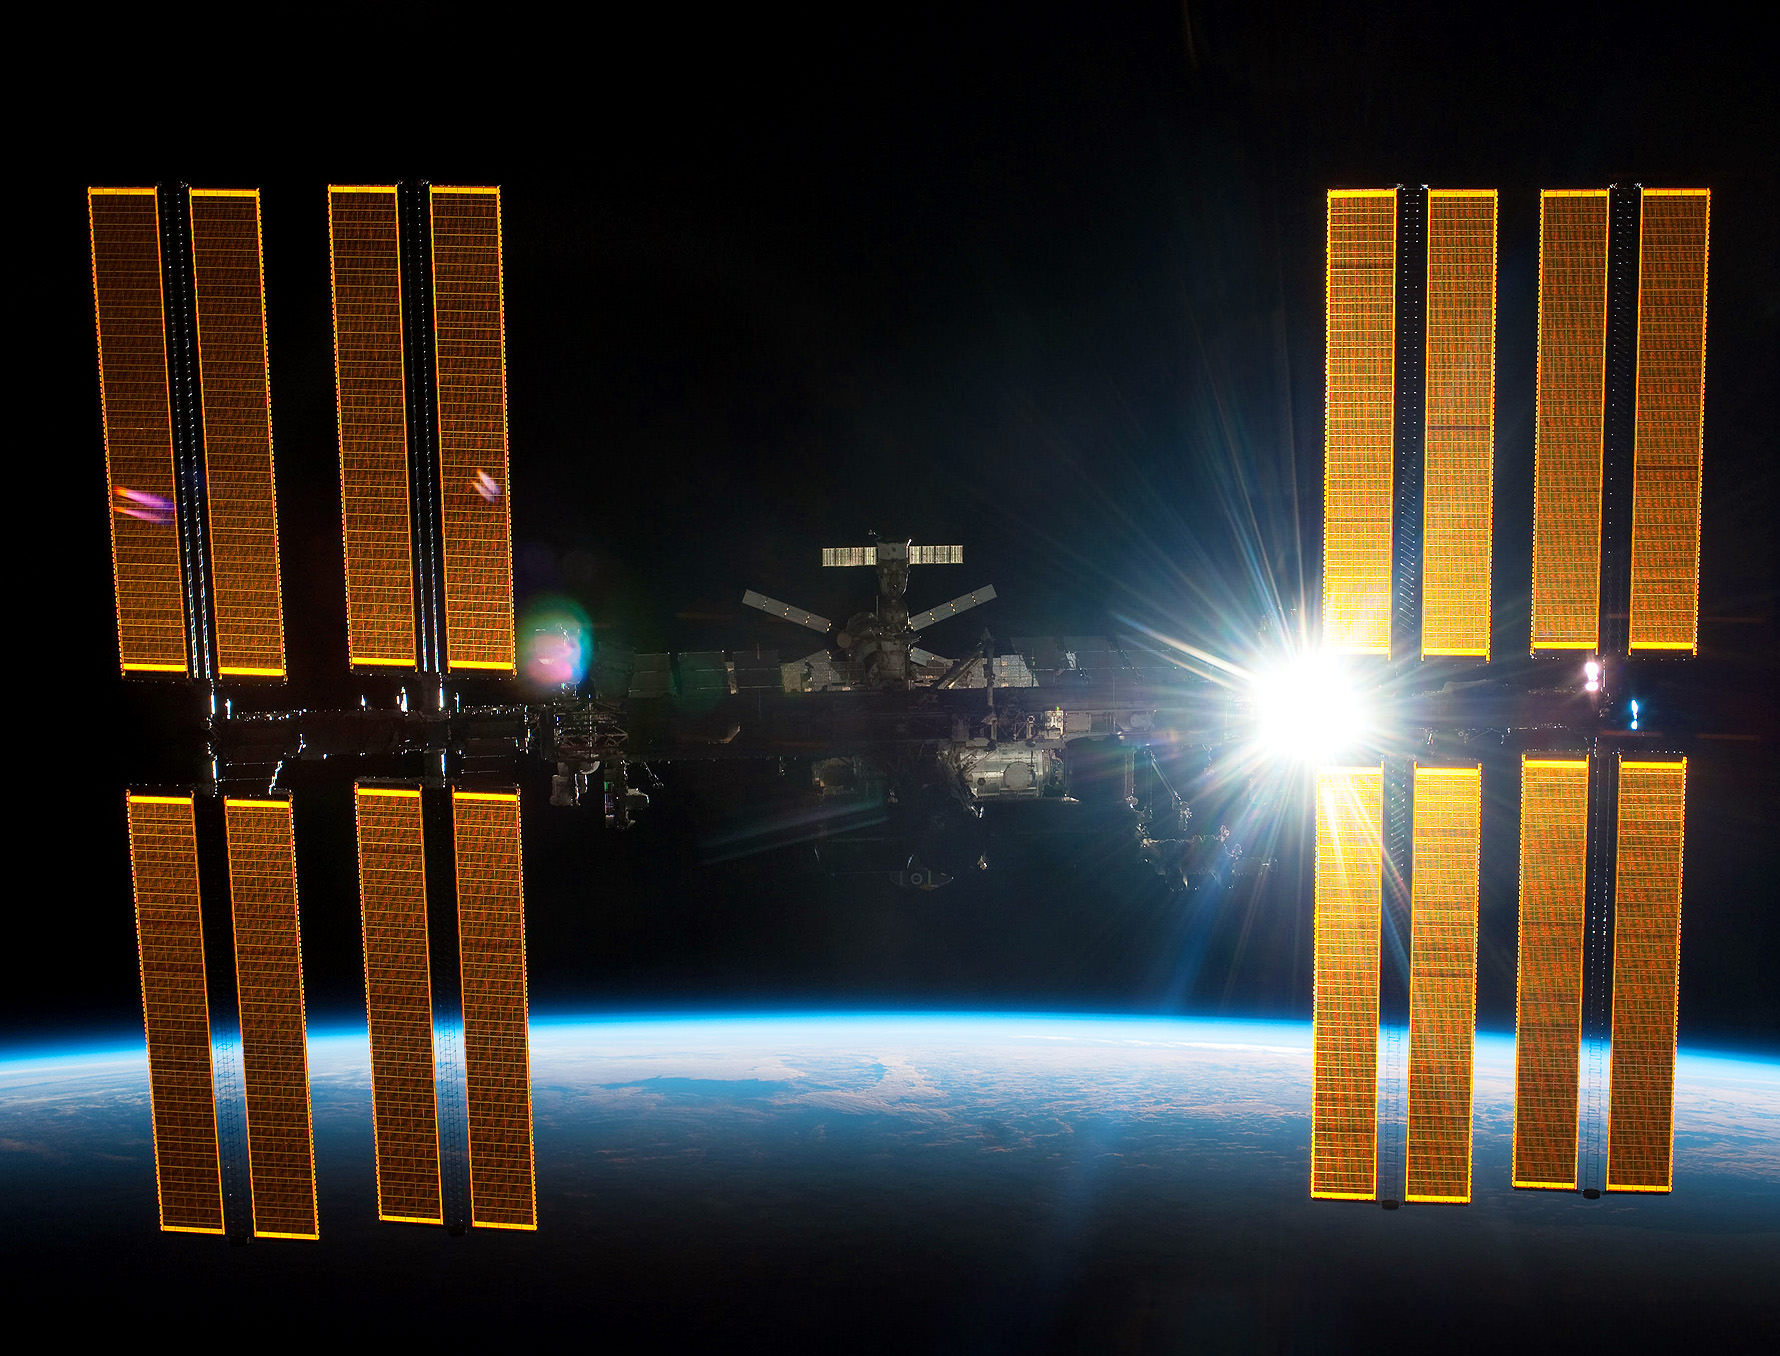 Mission Control Loses Contact with International Space Station